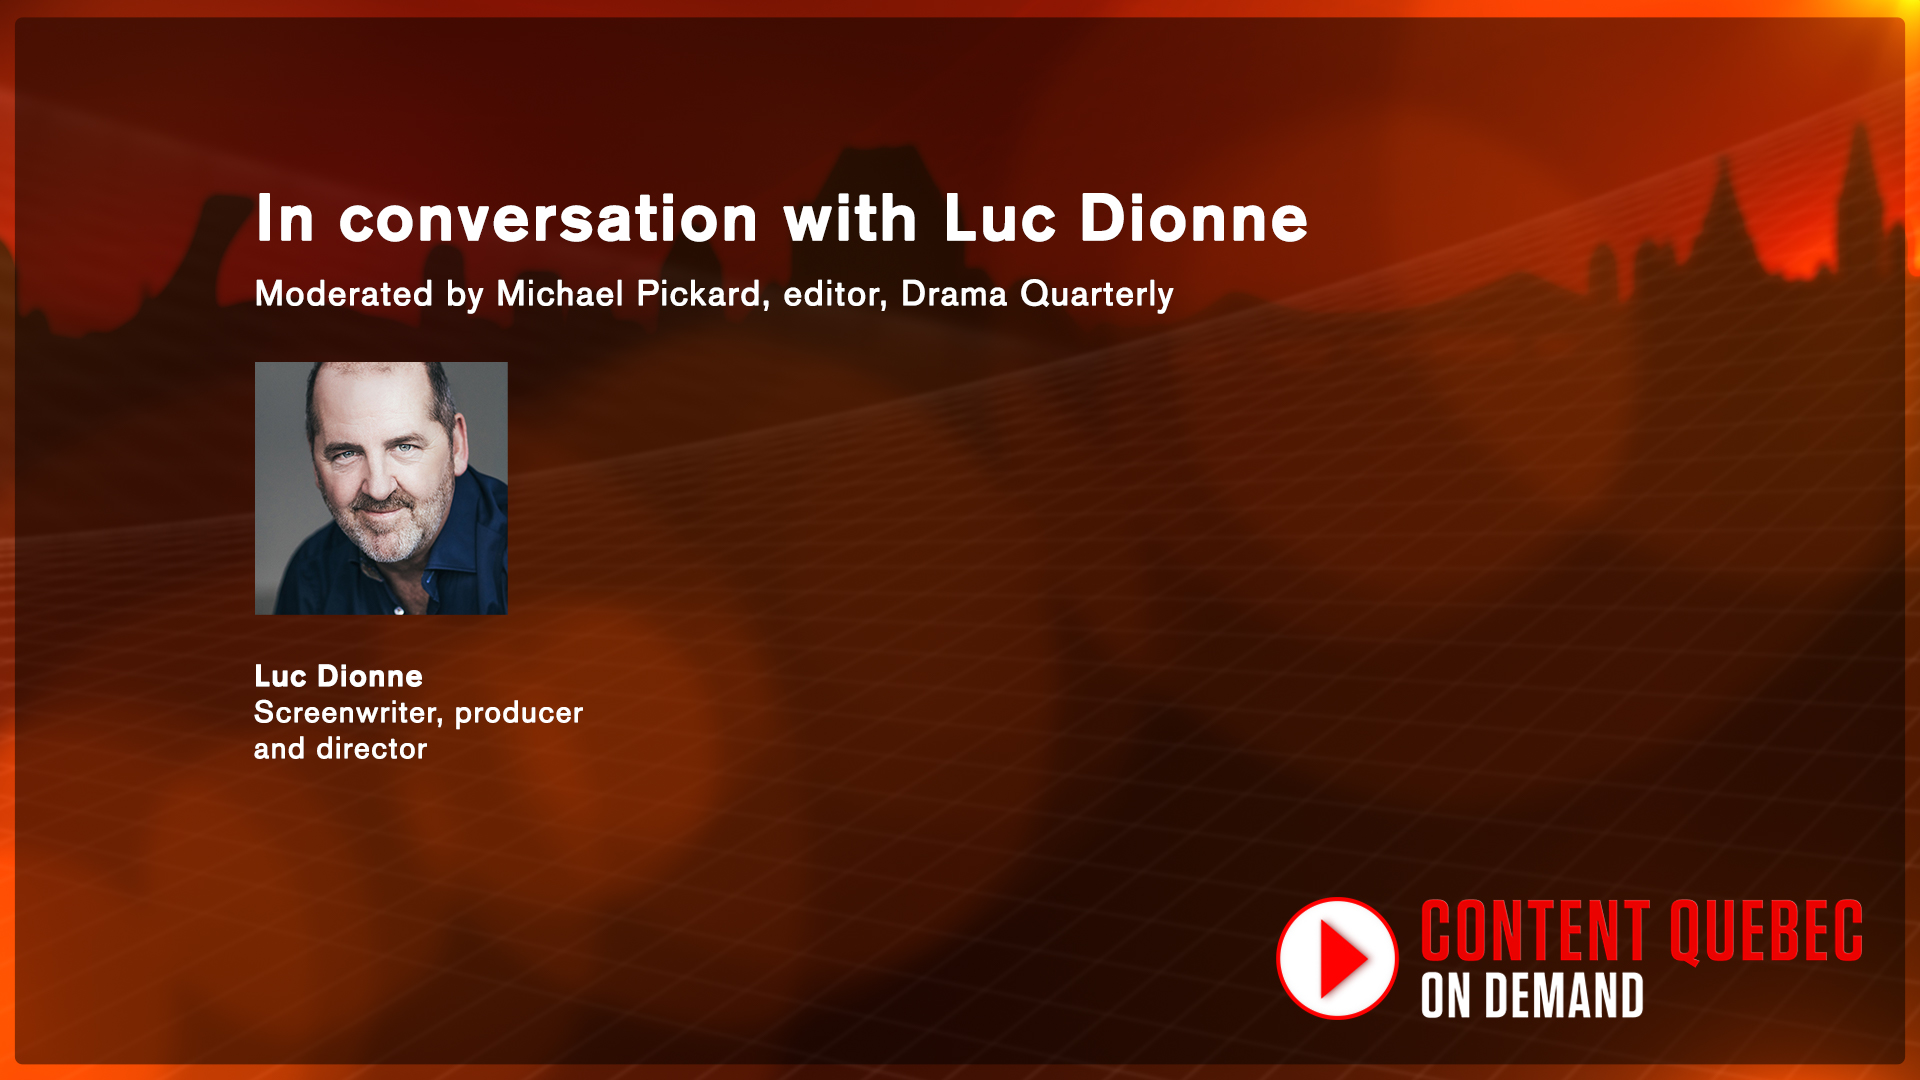 In conversation with Luc Dionne